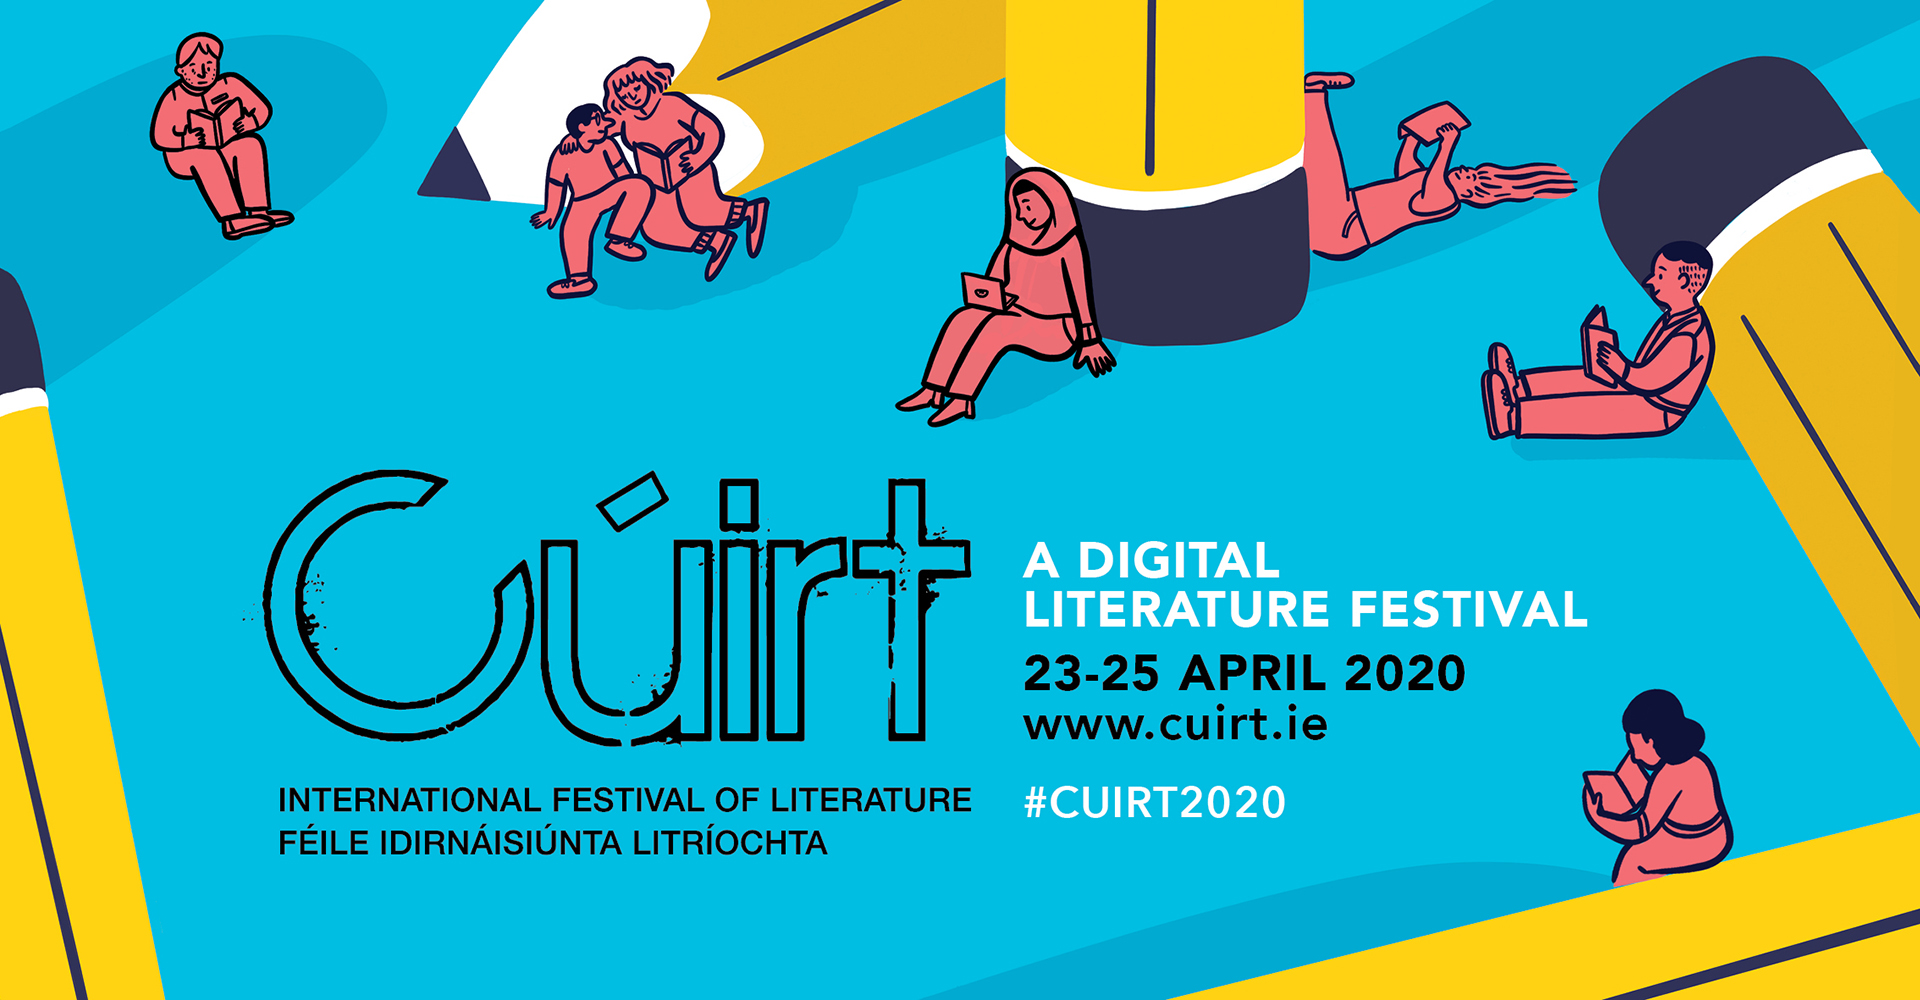 Cuirt Digital Literature Festival 2020